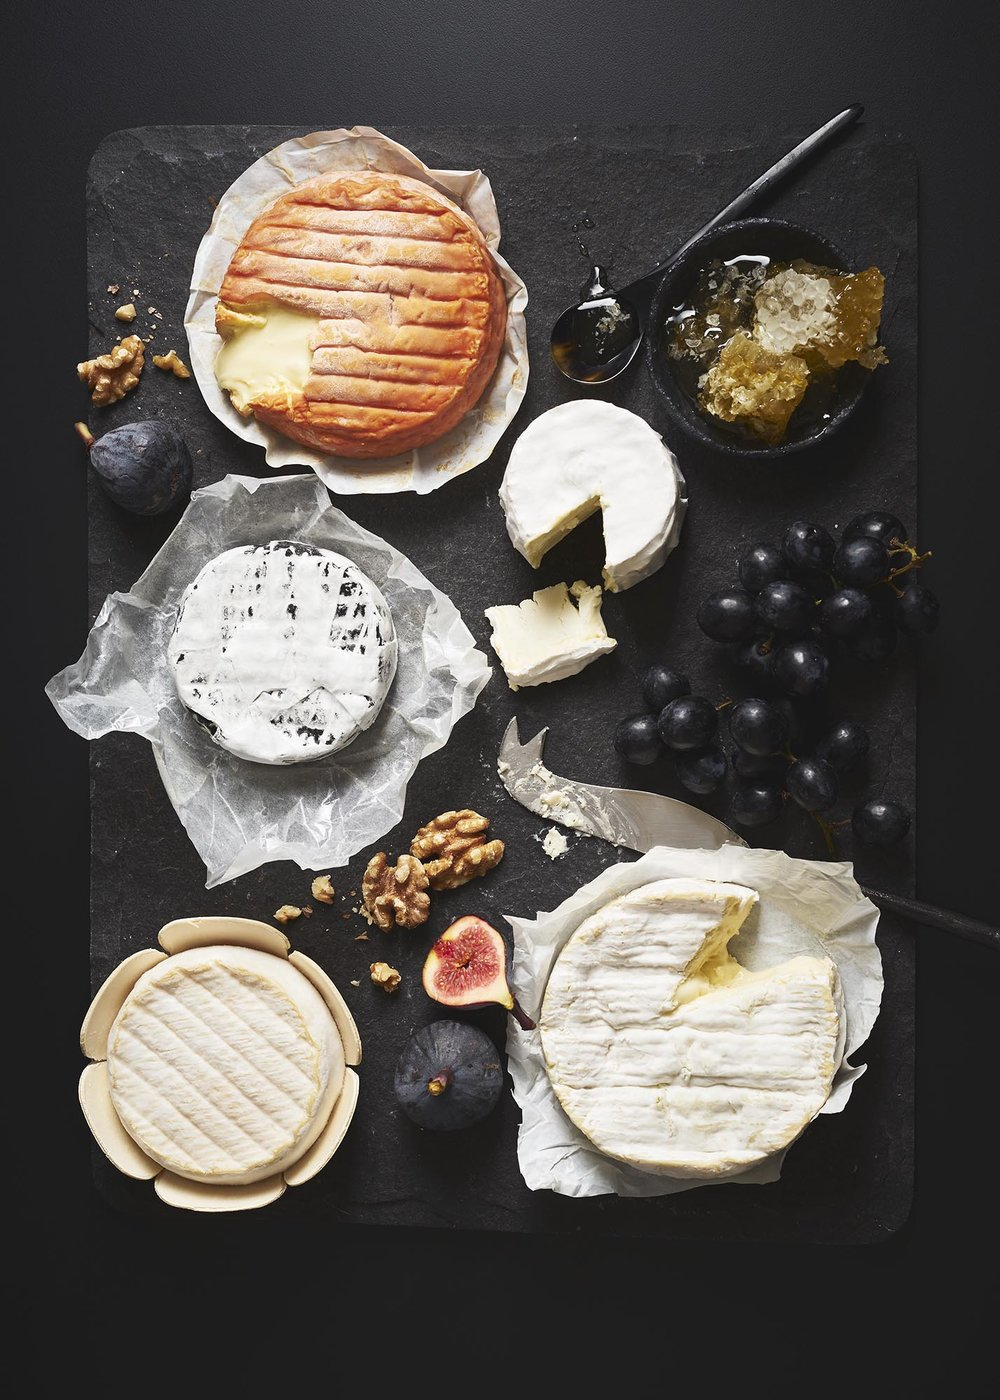 M&S_Social_Cheese_Board.jpg